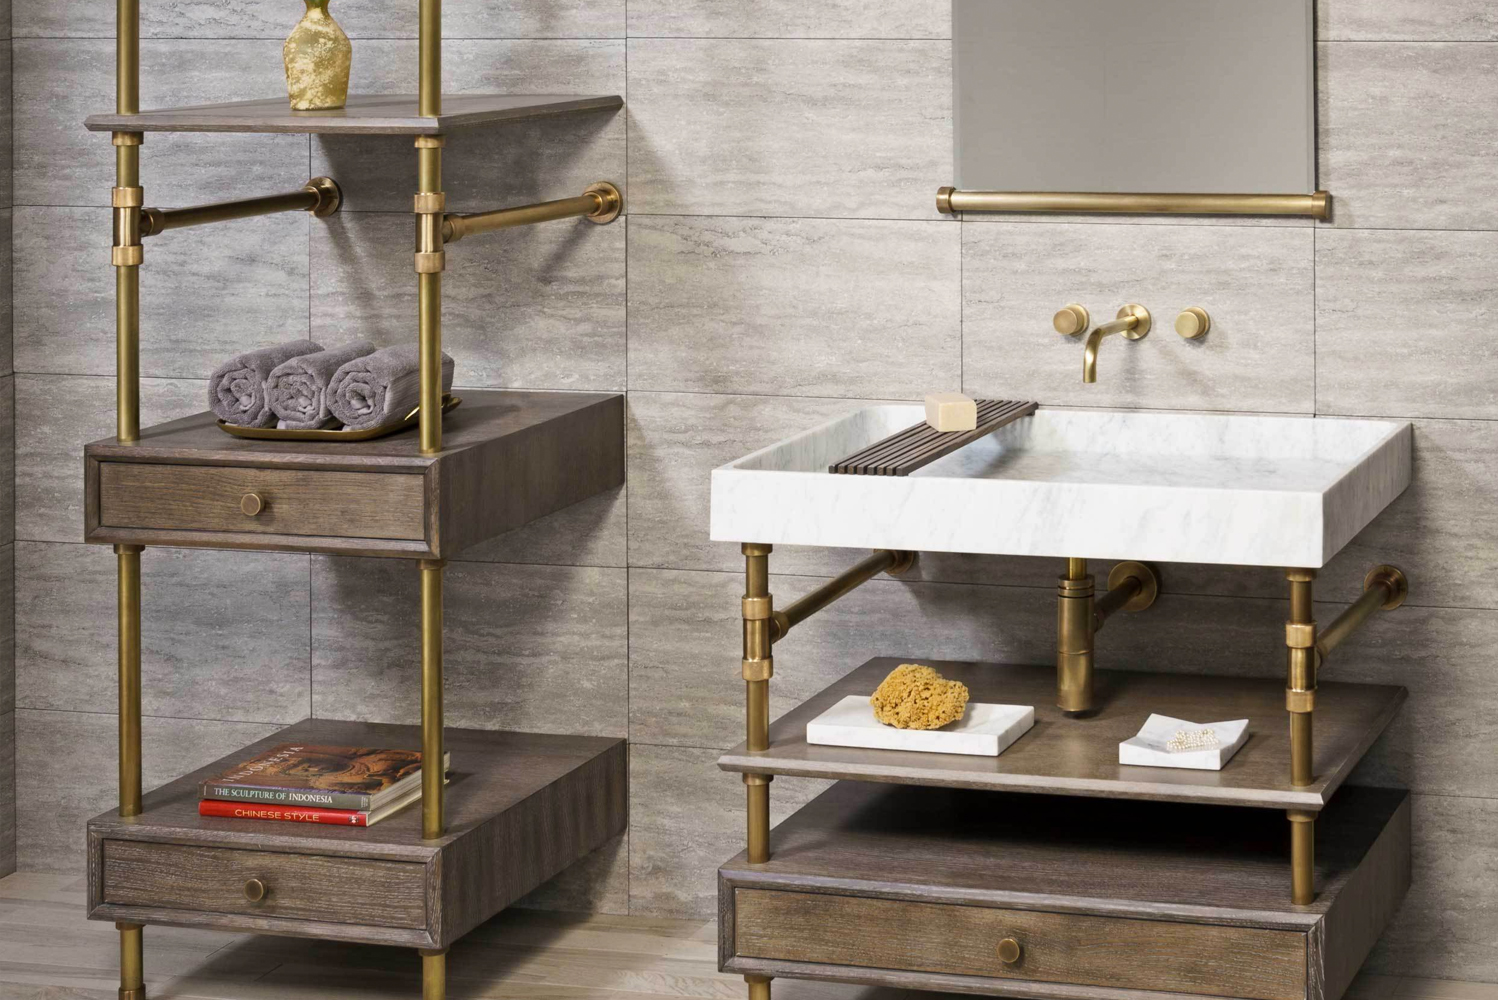 The brass legs with knurled fittings go through each component in the Elemental collection.